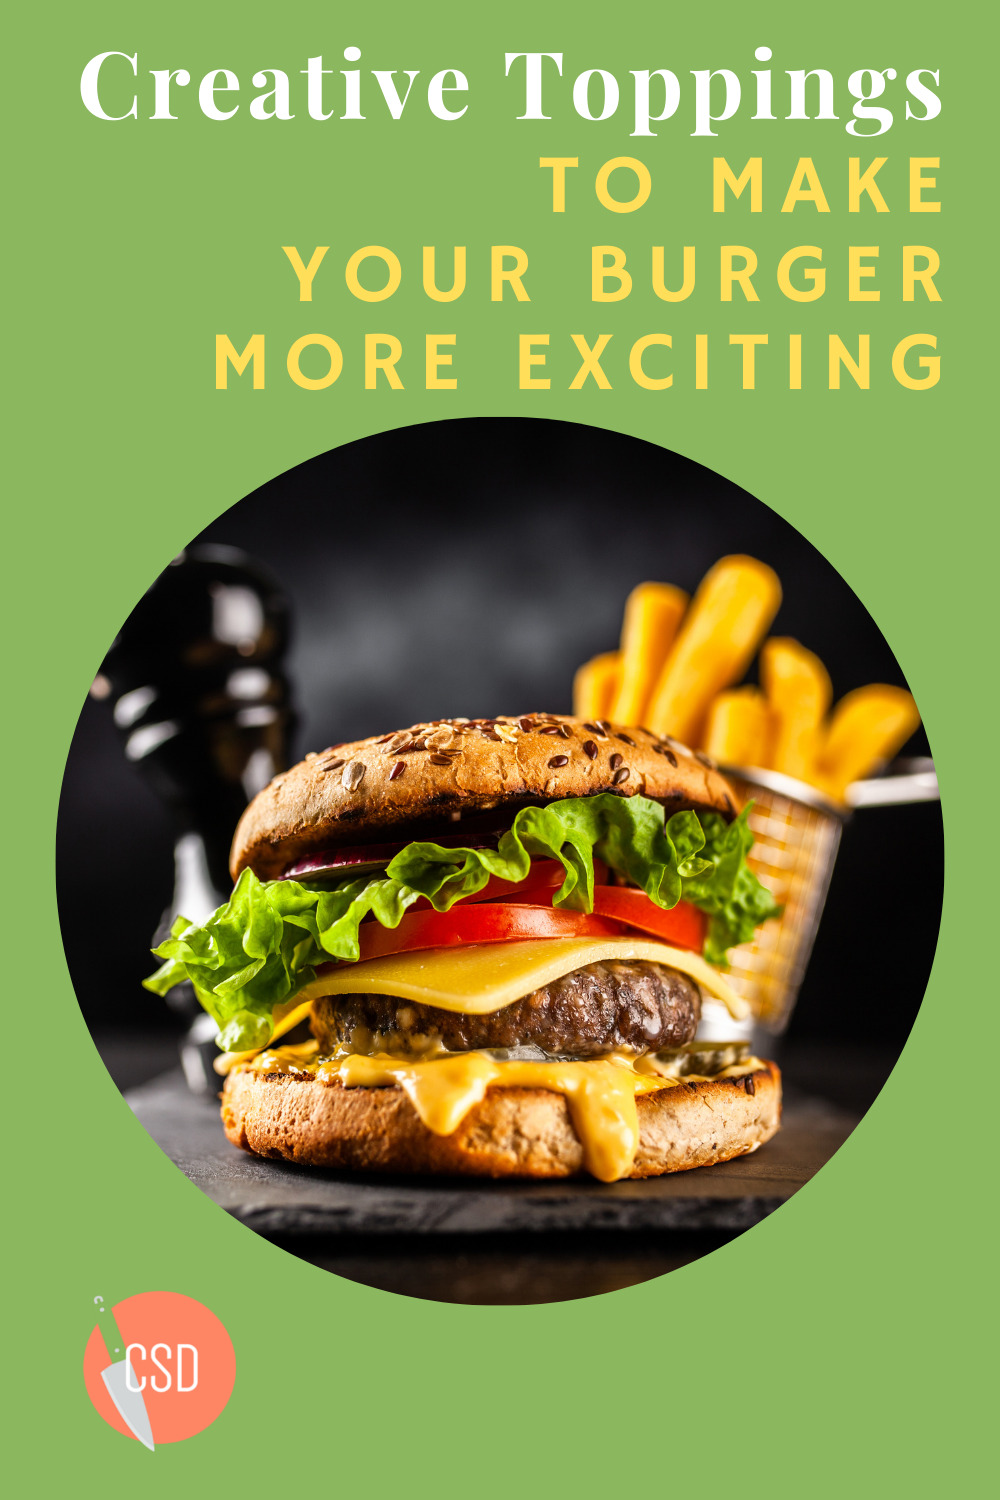 Cutsidedown.com will help you wow your dinner guests with amazing and easy recipes. Find whatever your palette desires with tons of ideas to choose from. Branch out of your comfort zone with these unique and tasty burger toppings!